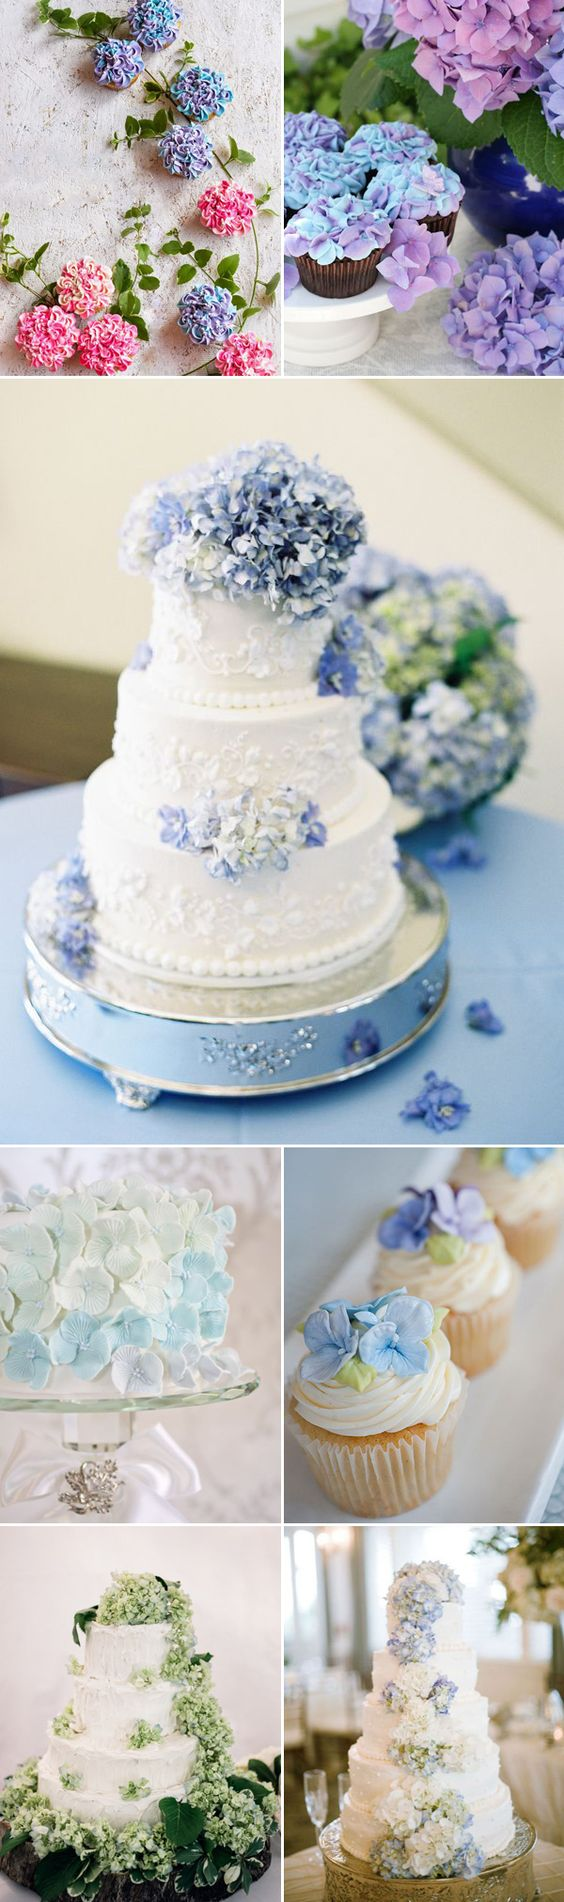 37 Beautiful Ways to decorate your wedding with hydrangeas - Desserts: